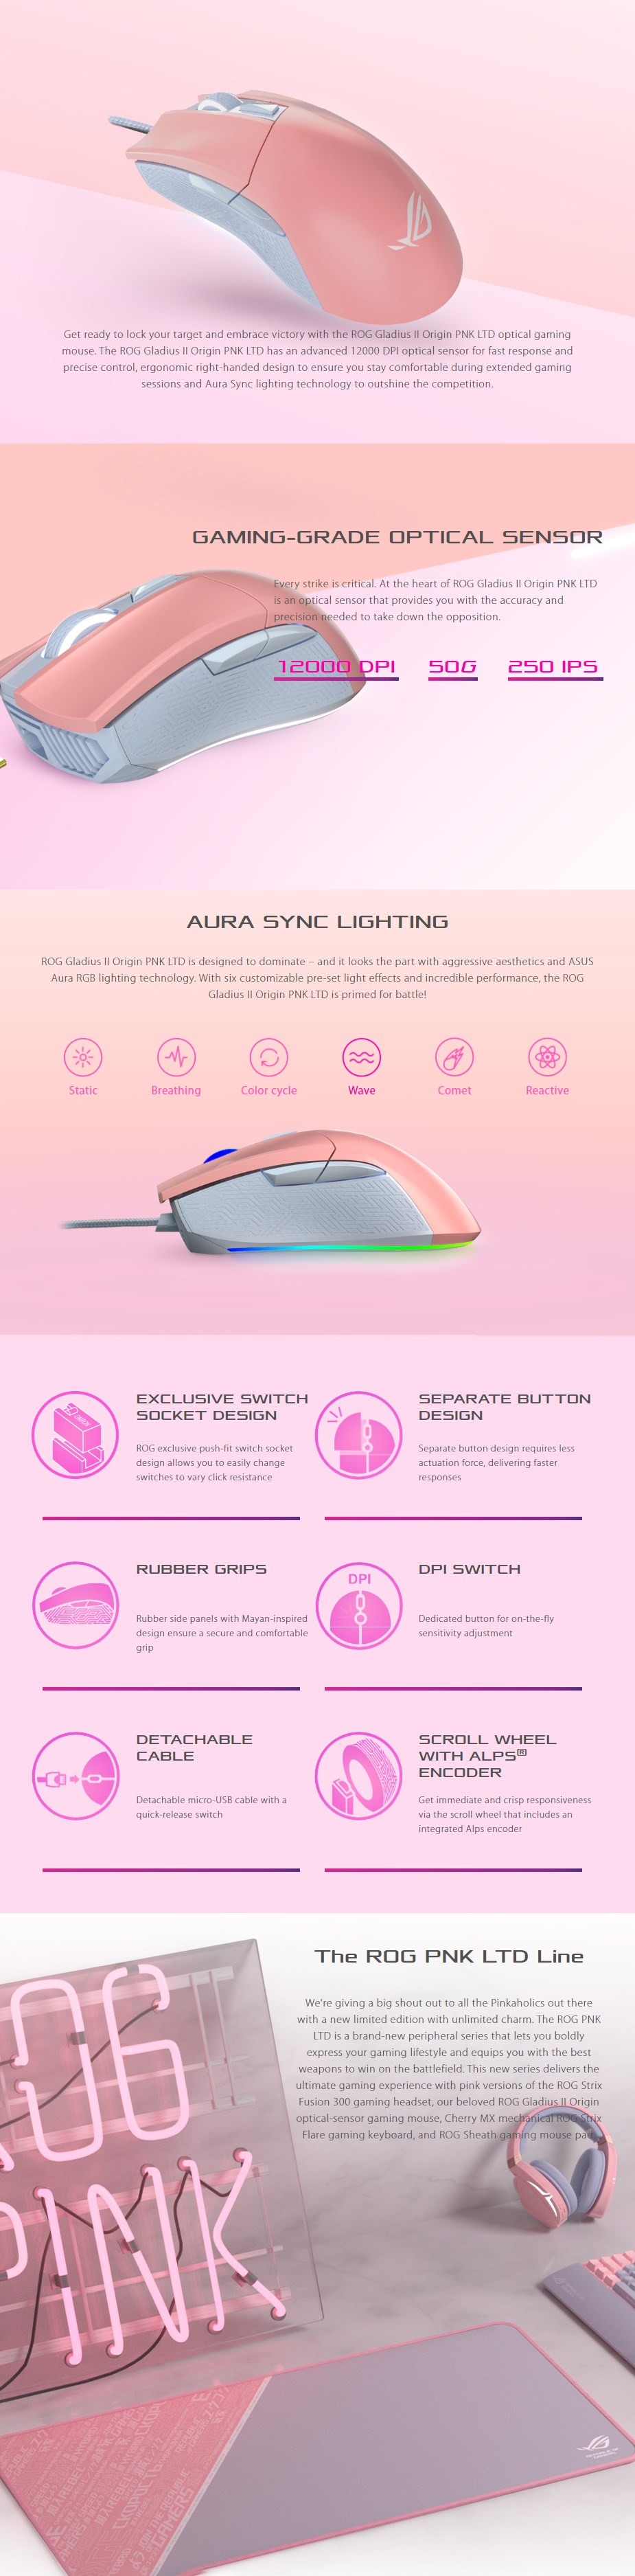 ASUS ROG Gladius II RGB Optical Gaming Mouse - Pink Edition - Overview 1